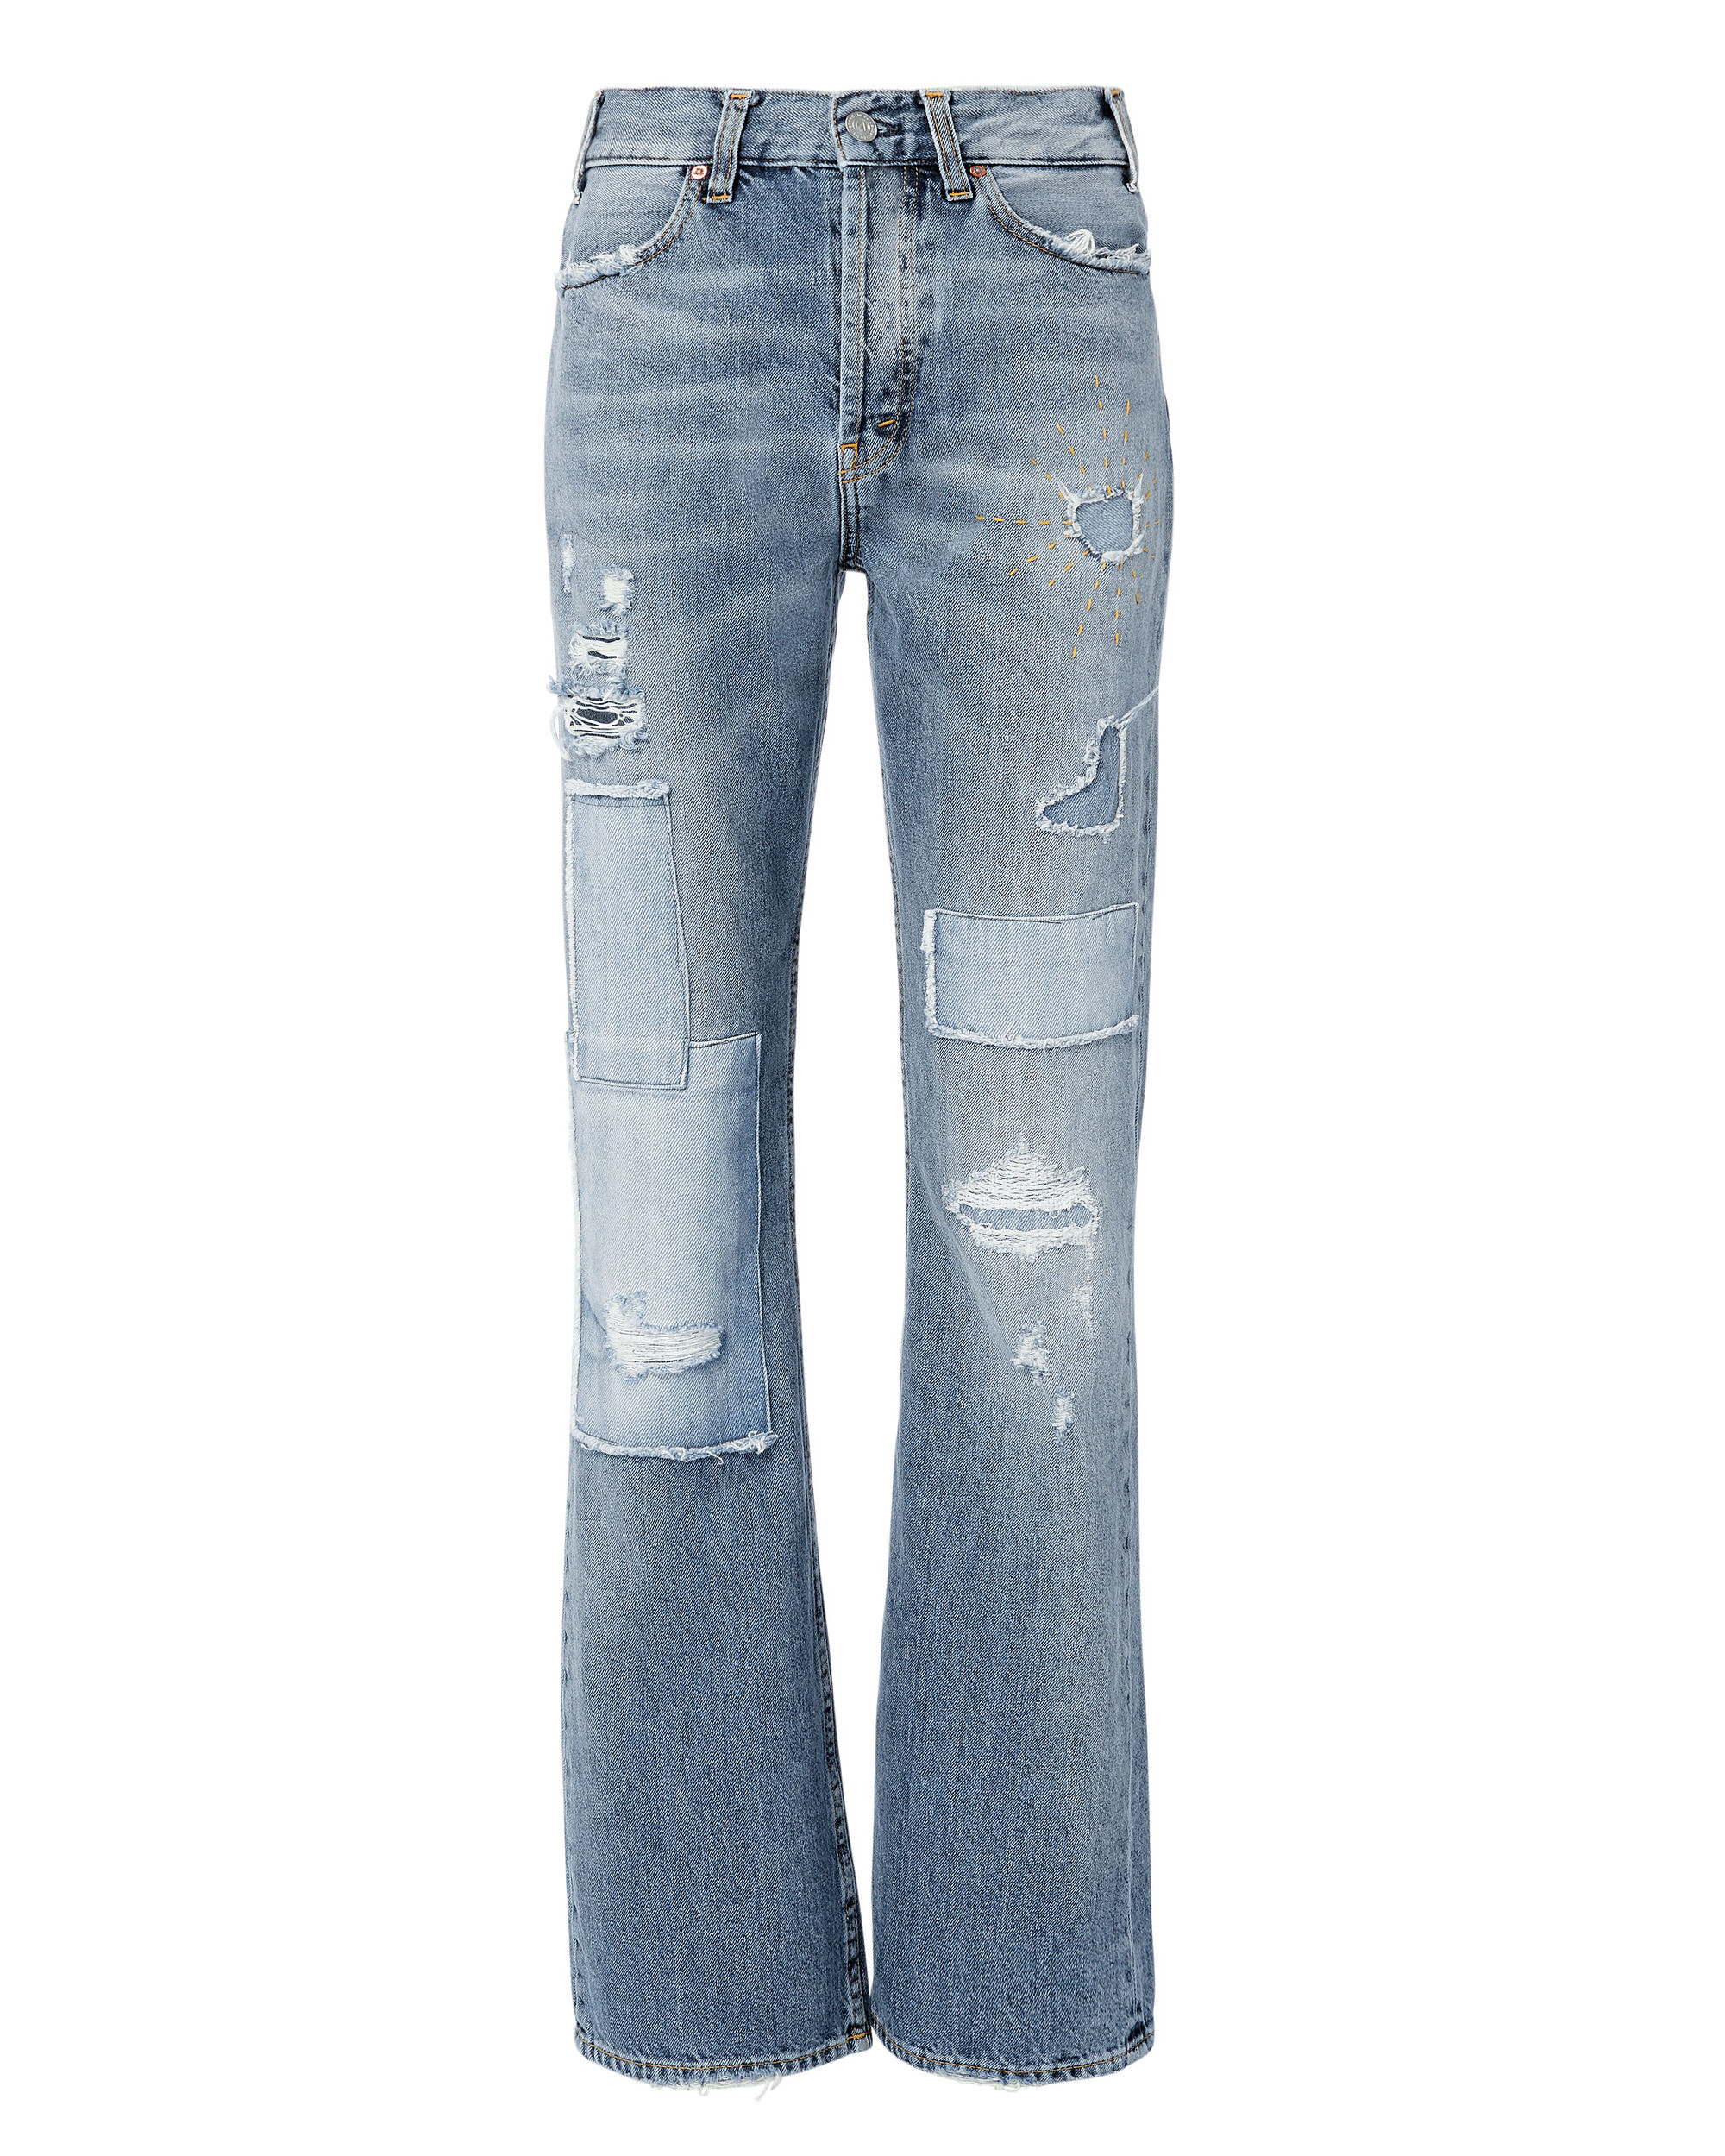 ACYNETIC Stella Bell Bottom Jeans